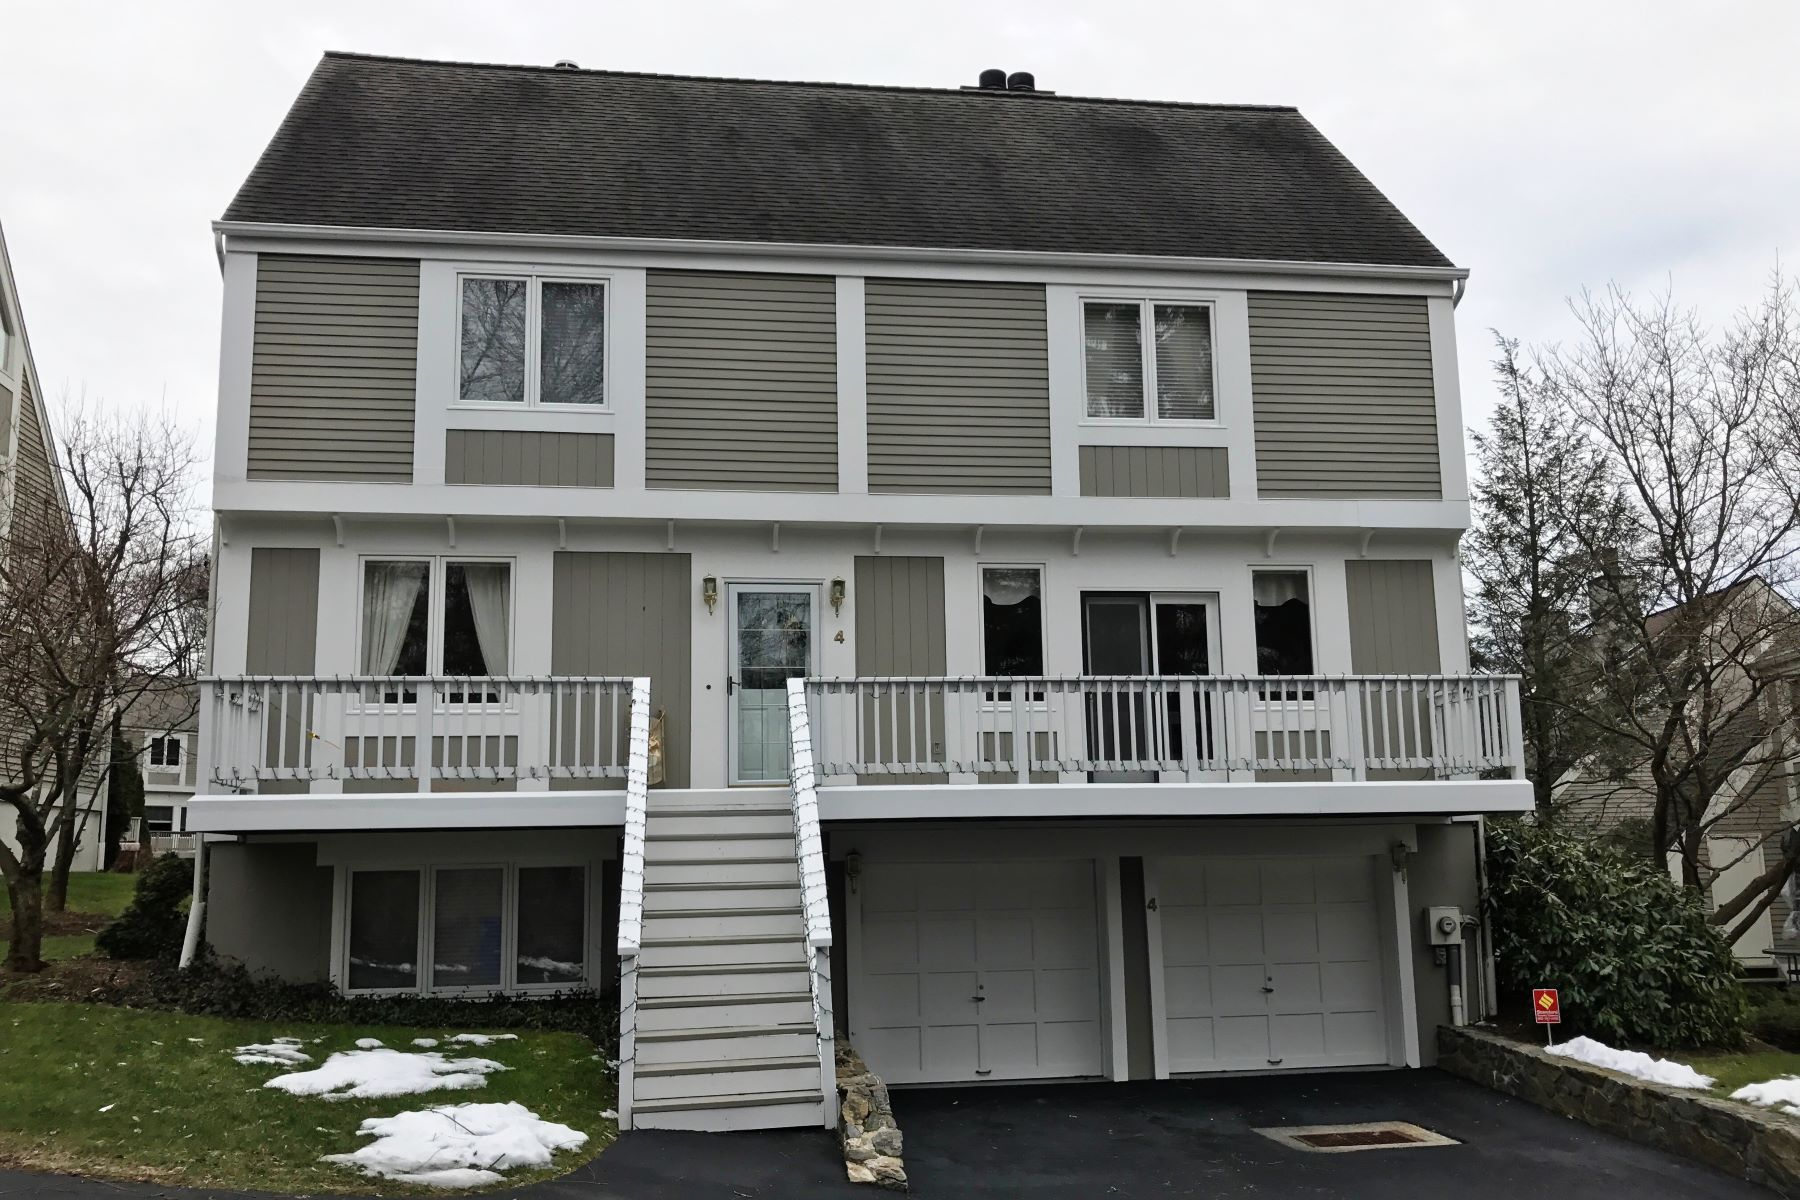 para Venda às Teal Brook Townhouse 212 Richards Avenue 4 Norwalk, Connecticut, 06850 Estados Unidos